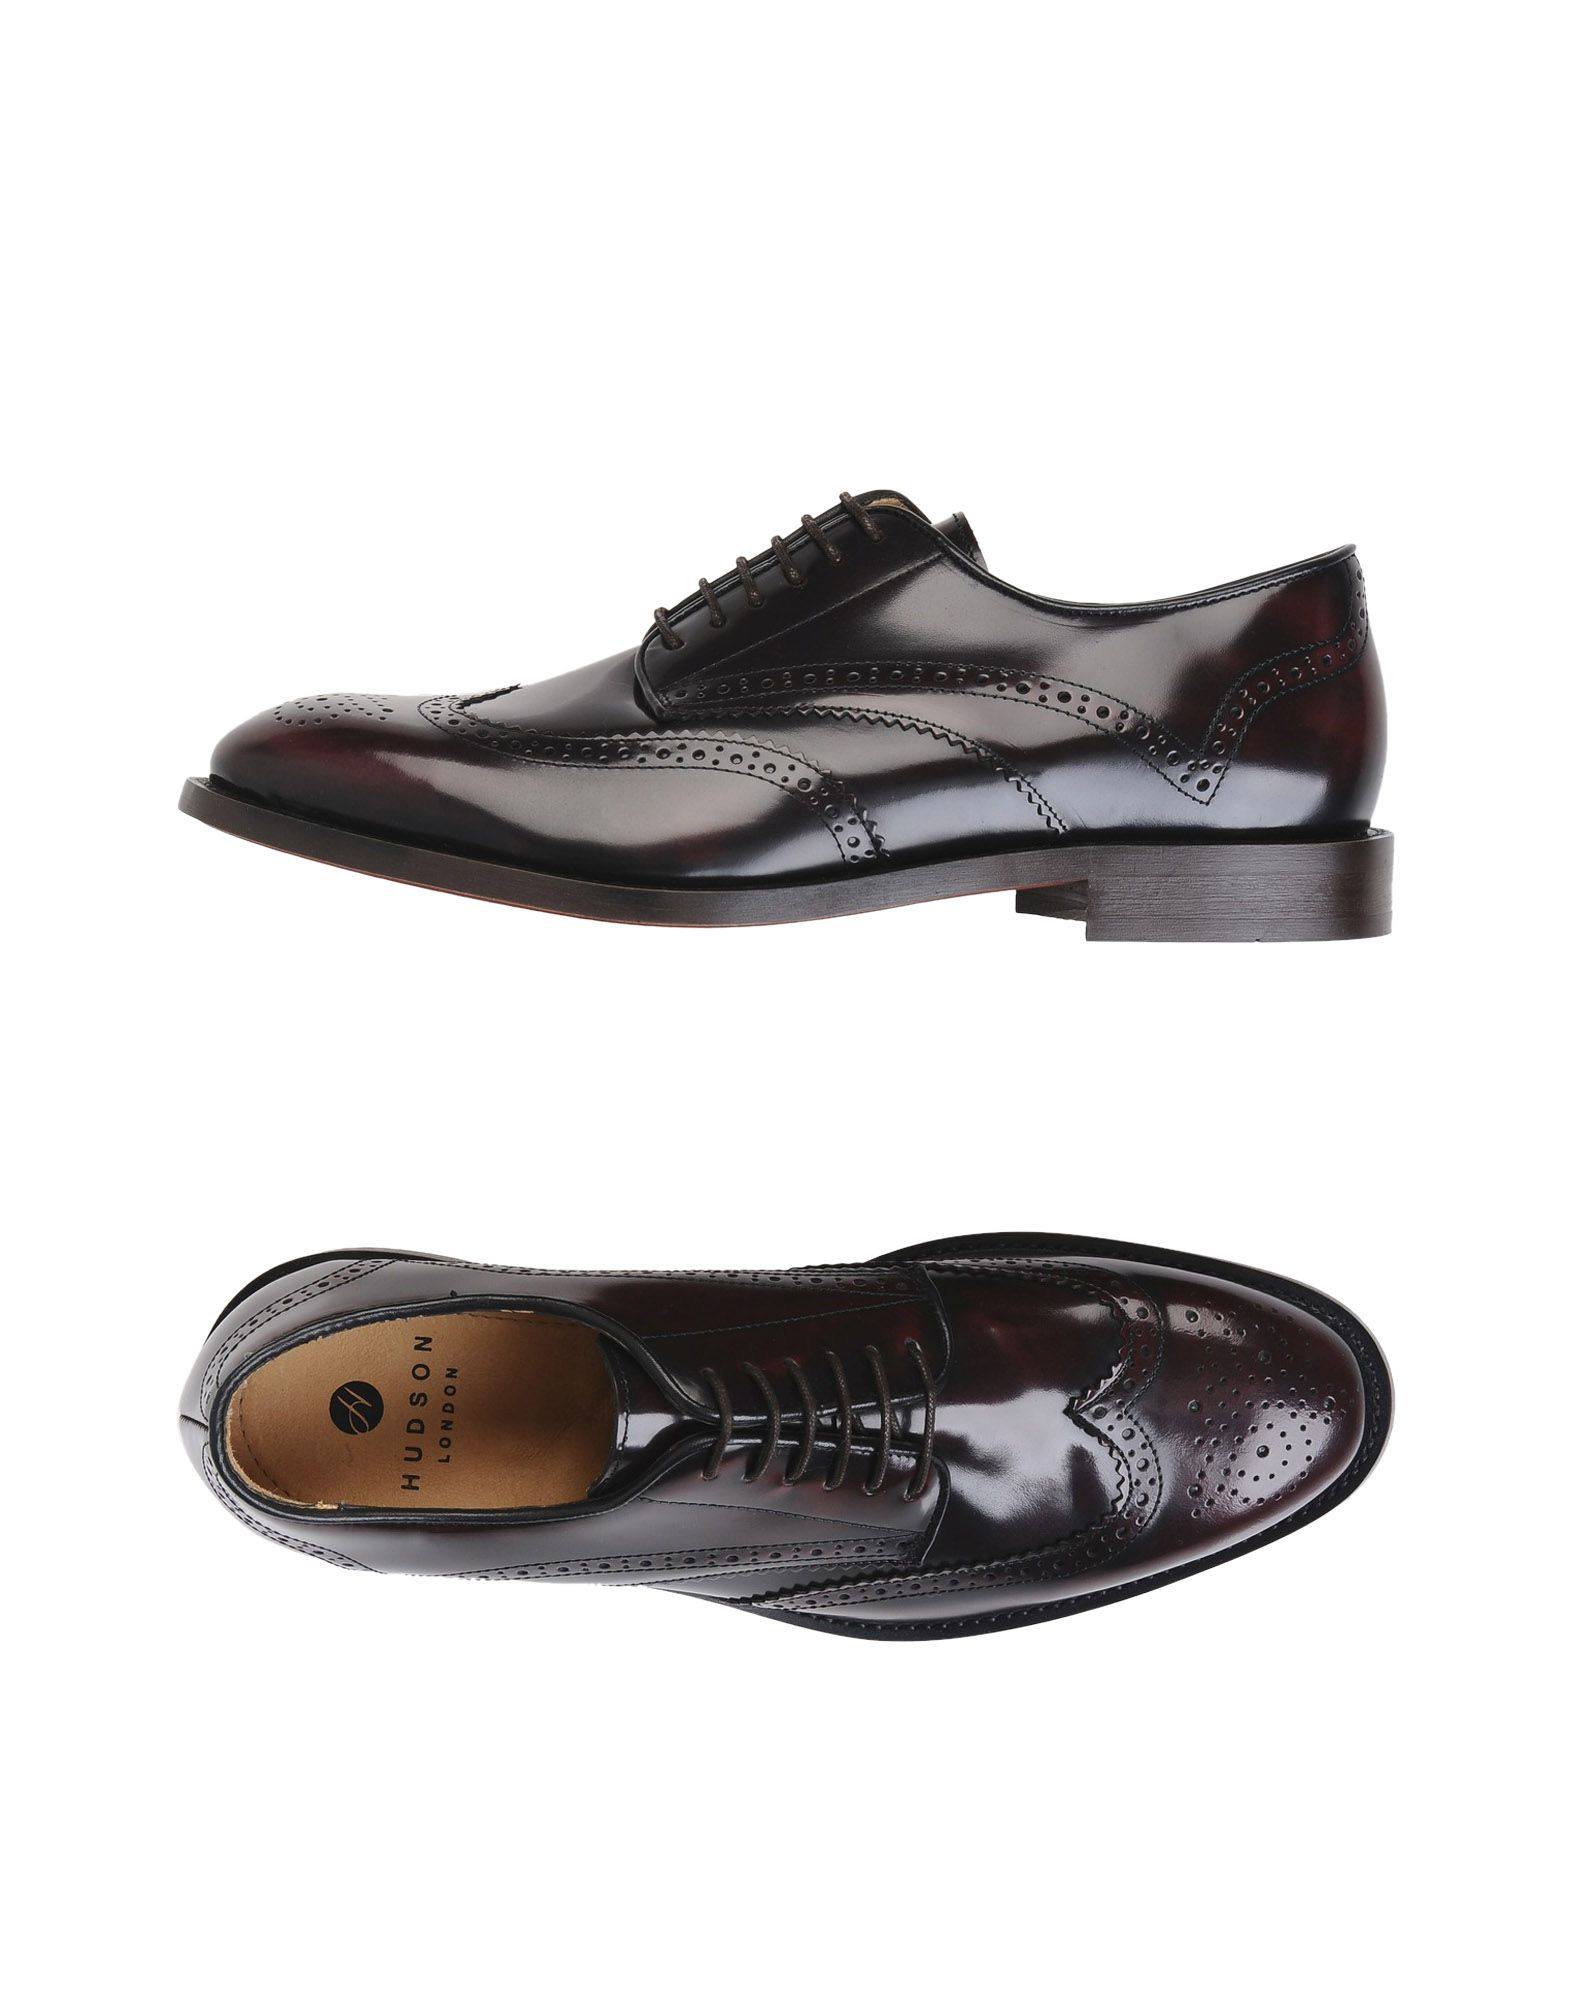 H BY HUDSON Laced Shoes in Maroon